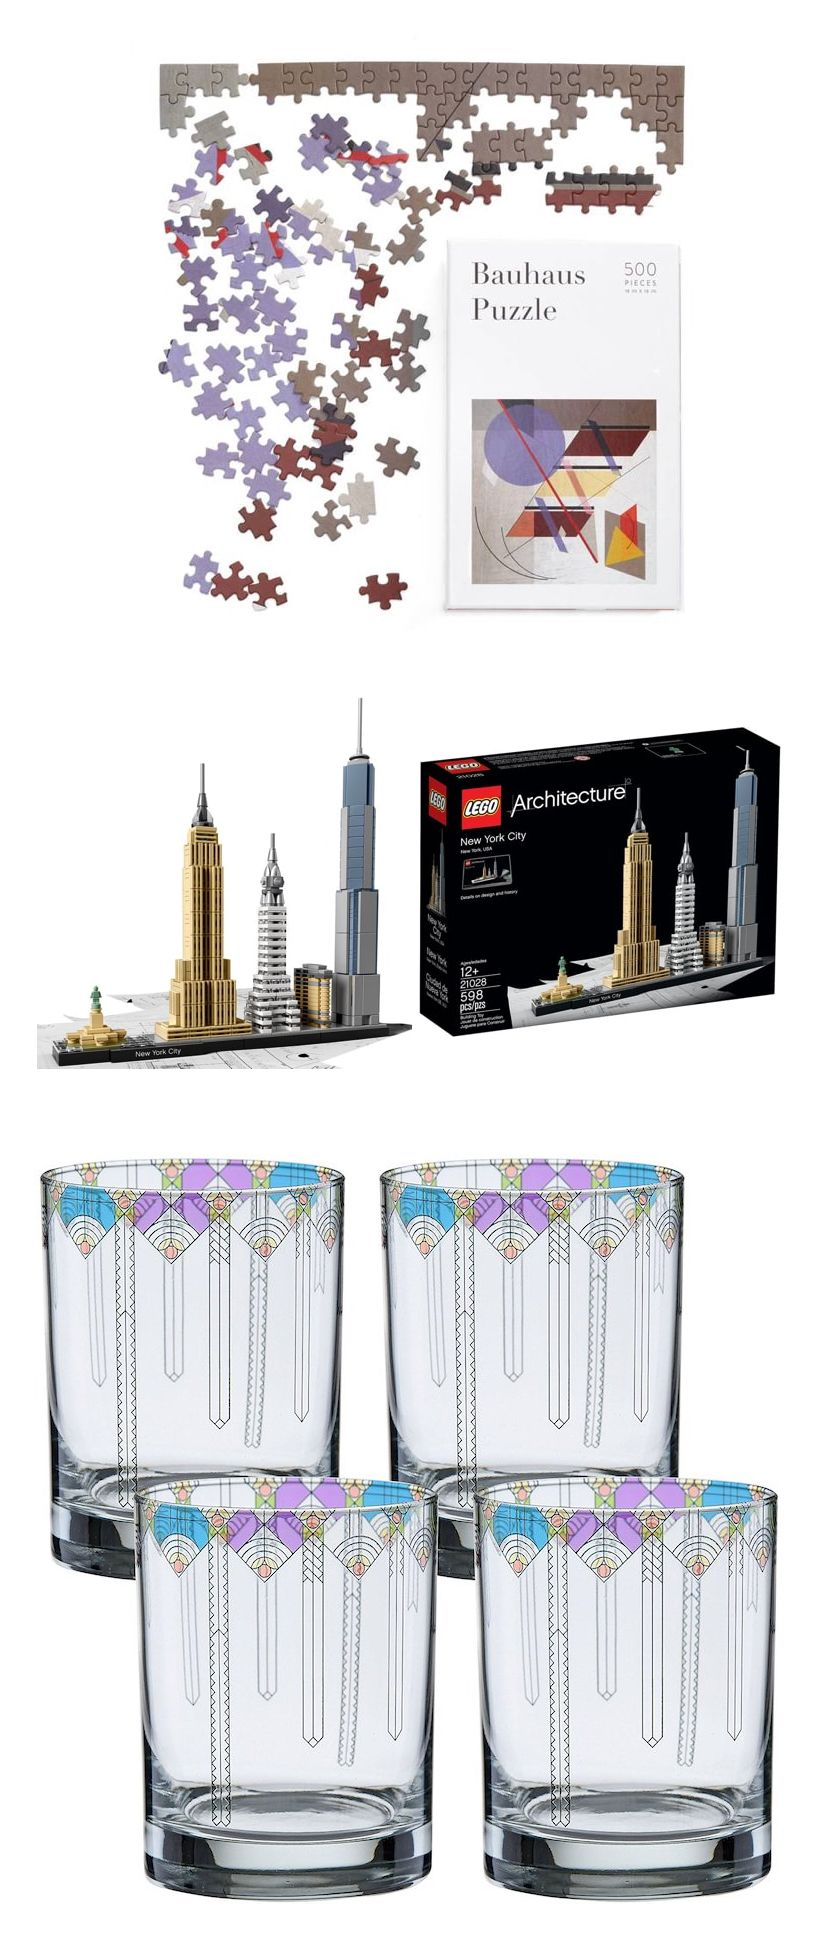 Looking For The Perfect Architecture Gift? Here Are 20+ Creative Products  That Will Help You Find Something Special For The Architecture Lover In  Your Life.